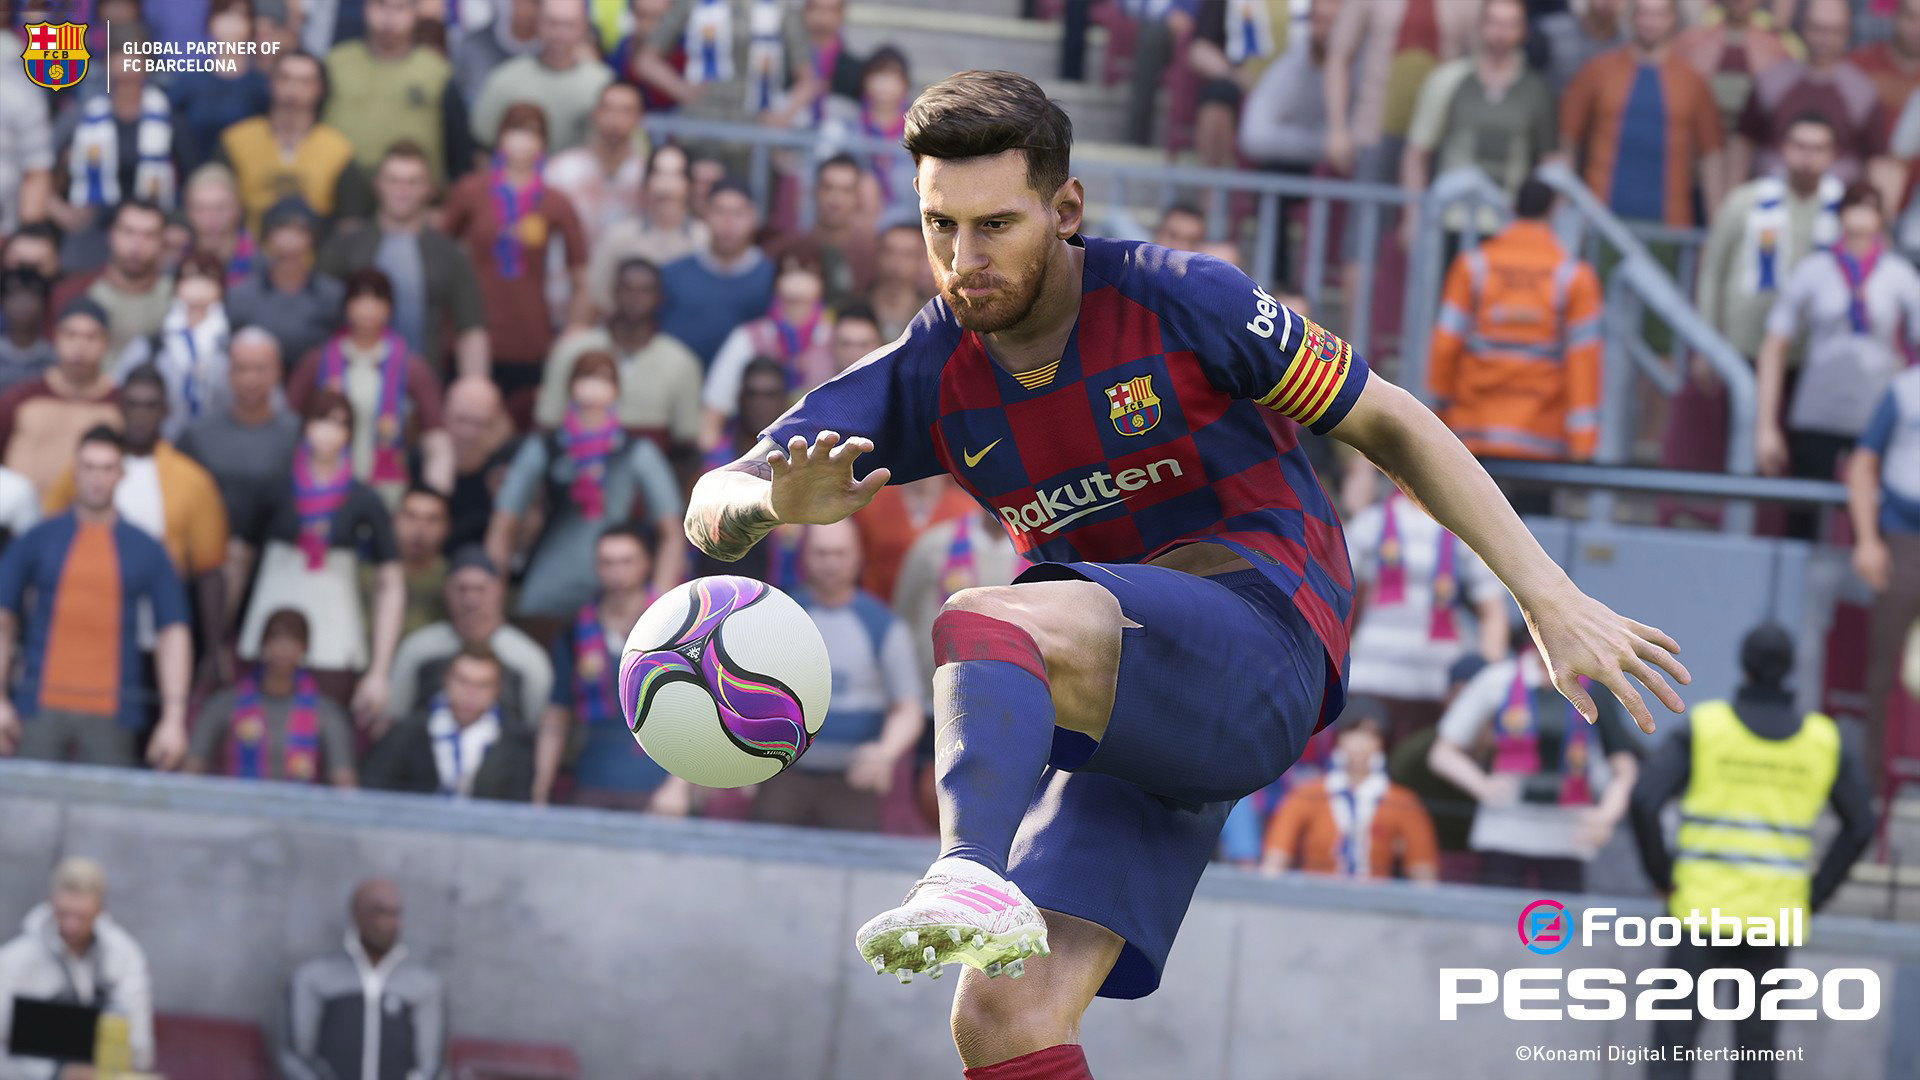 eFootball PES 2020 Wallpaper in 1920x1080